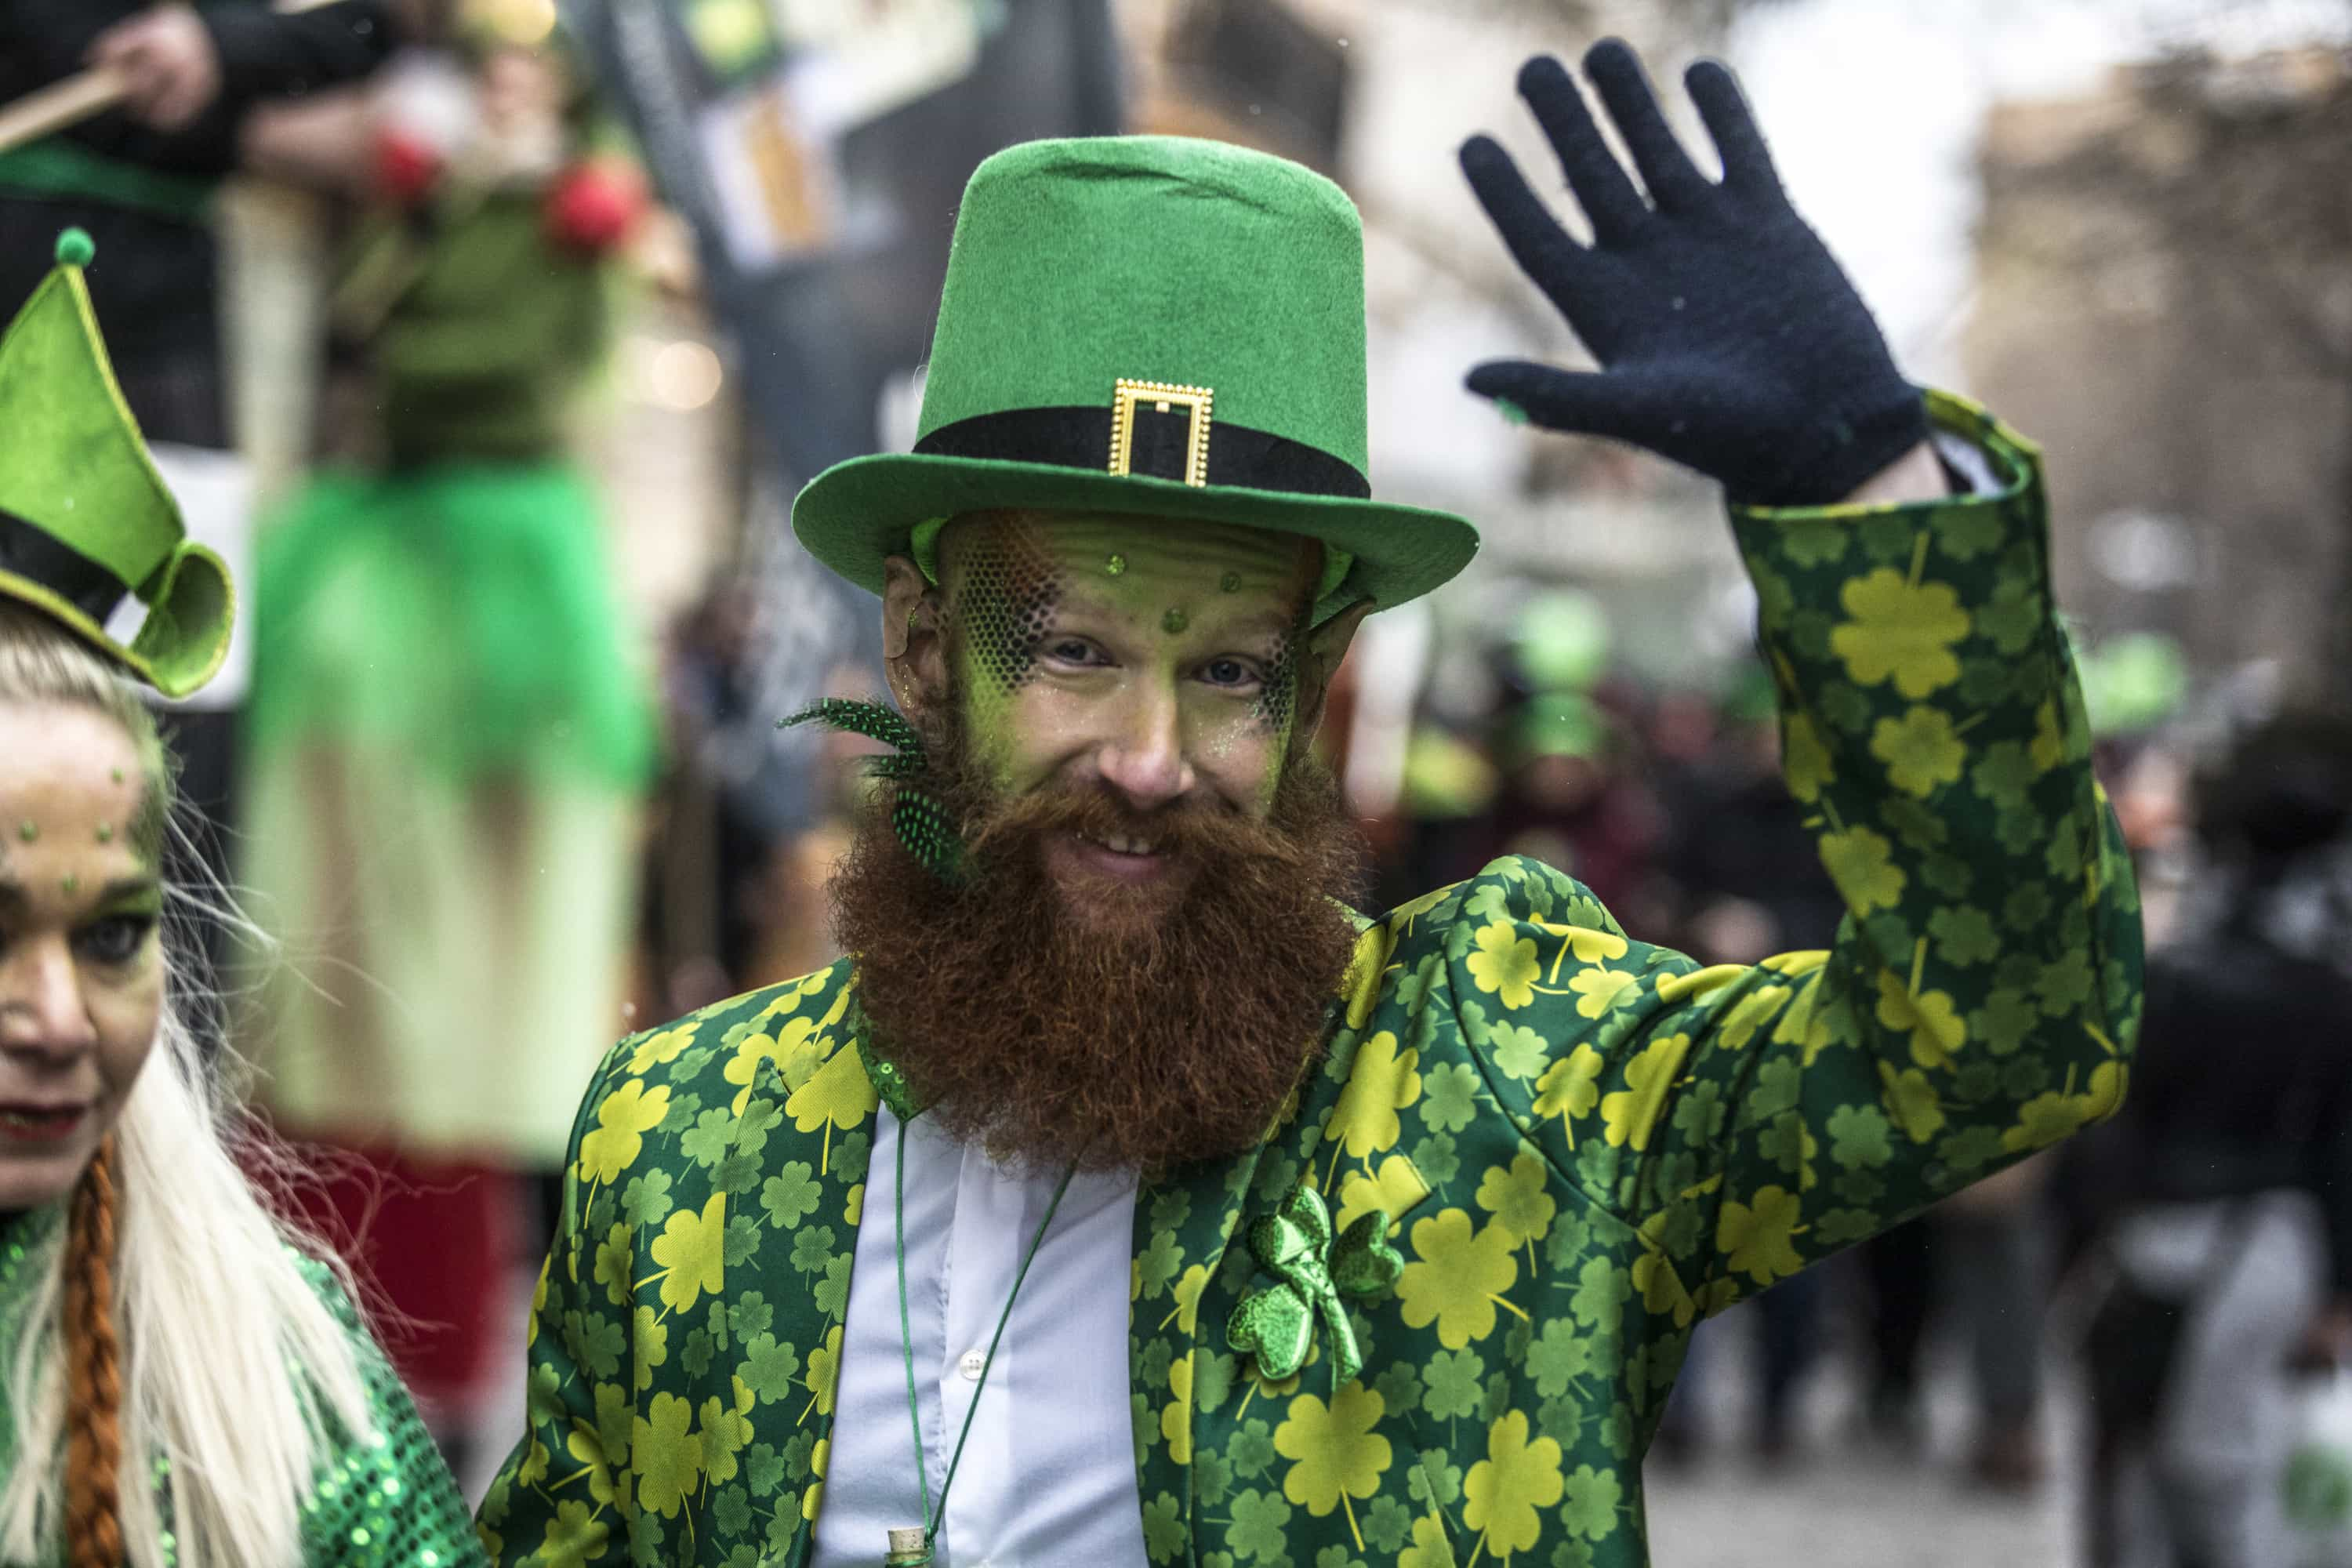 Irish cuisine, comedy, and craic: Prague goes greener than ever for St. Patrick's Day 2019